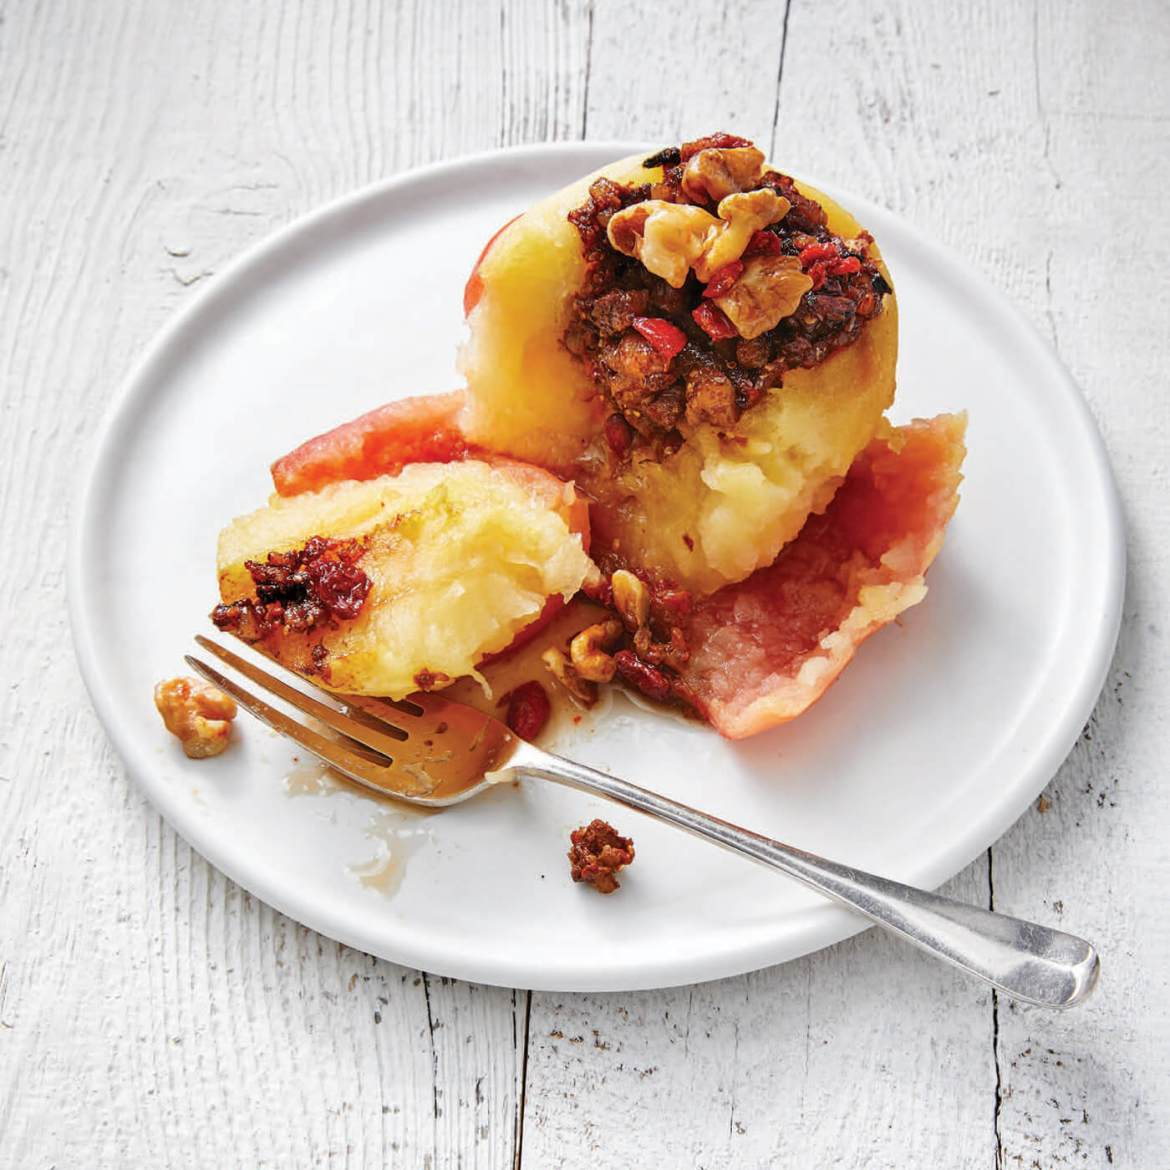 baked apples are one of the 21 Best Vegan Christmas Dinner Recipes